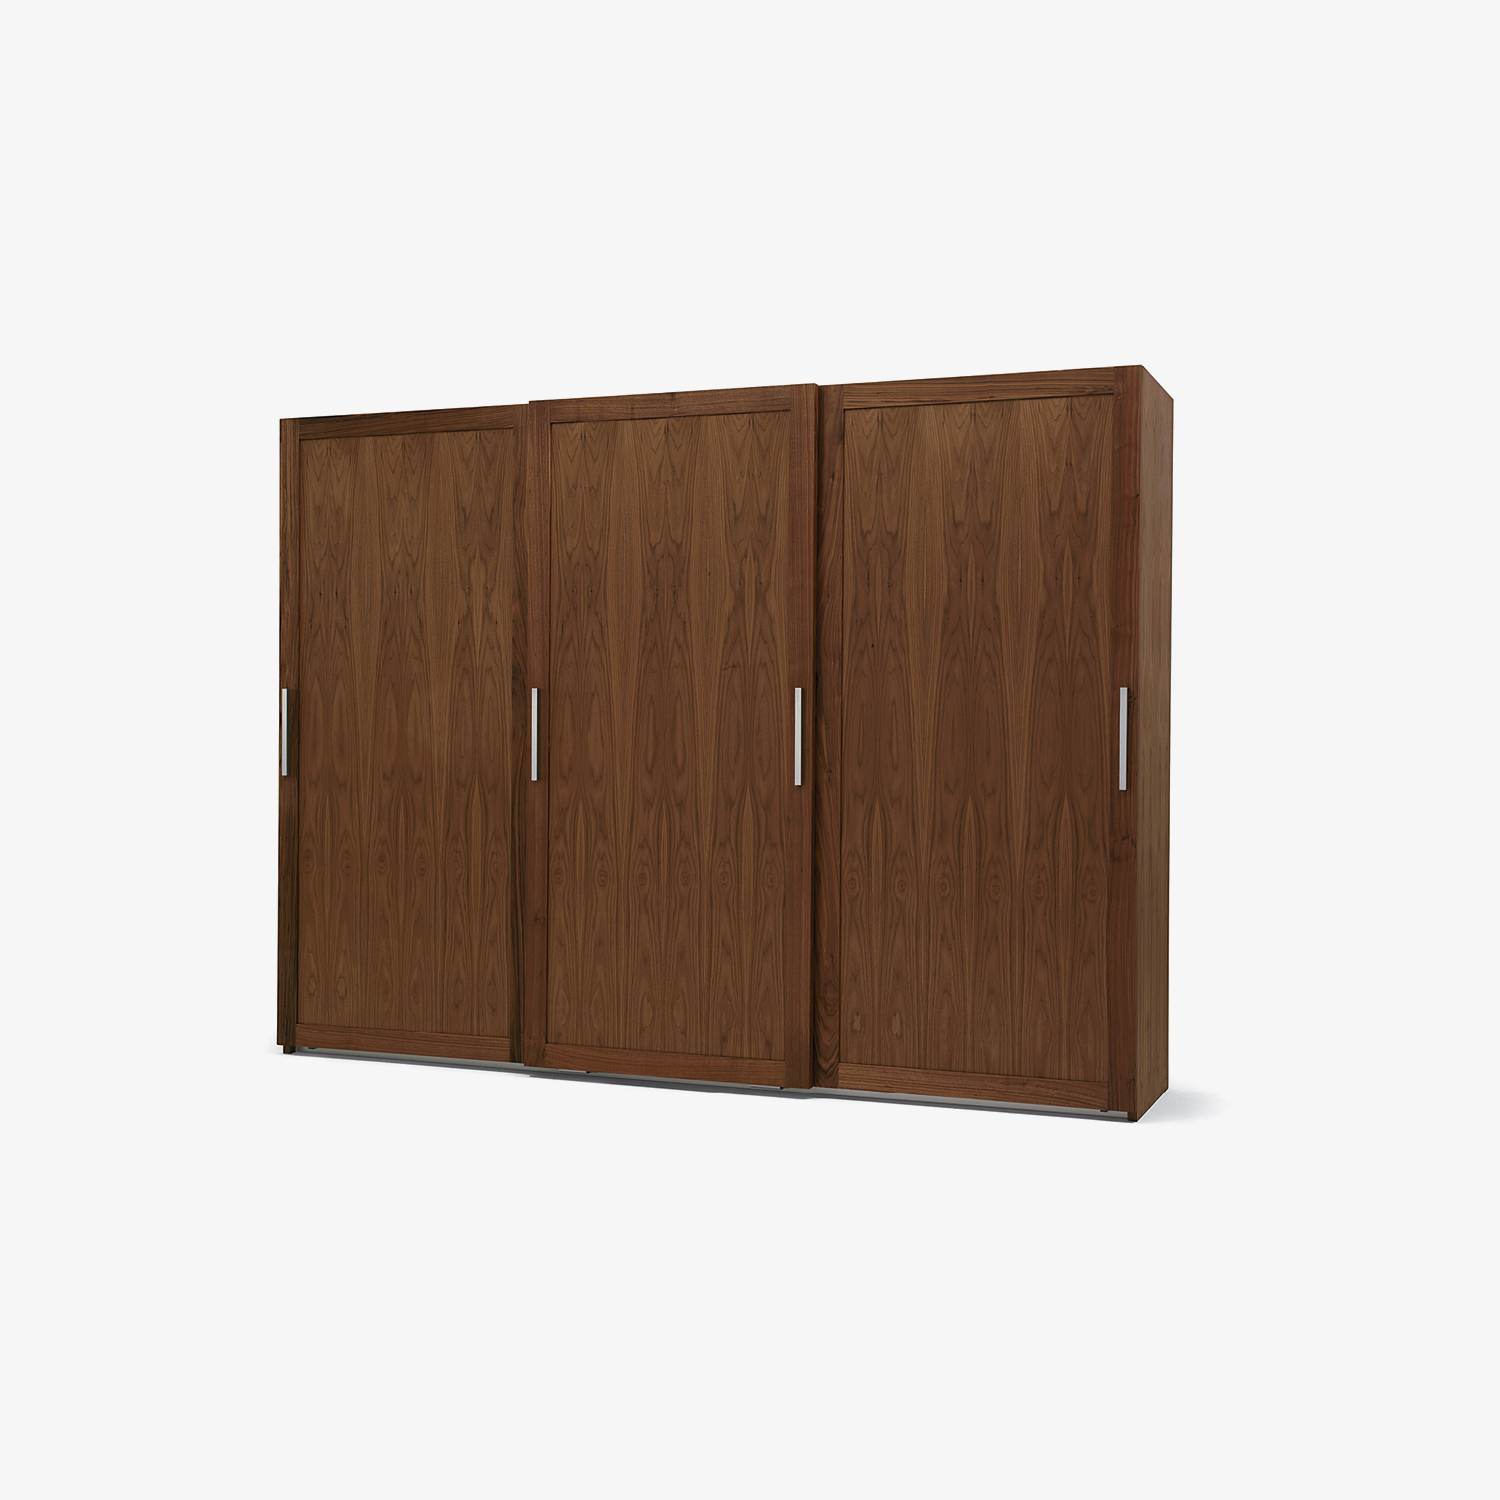 Solid wood wardrobe with aluminium sliding doors HANGAR | Solid wood wardrobe | Design wardrobe